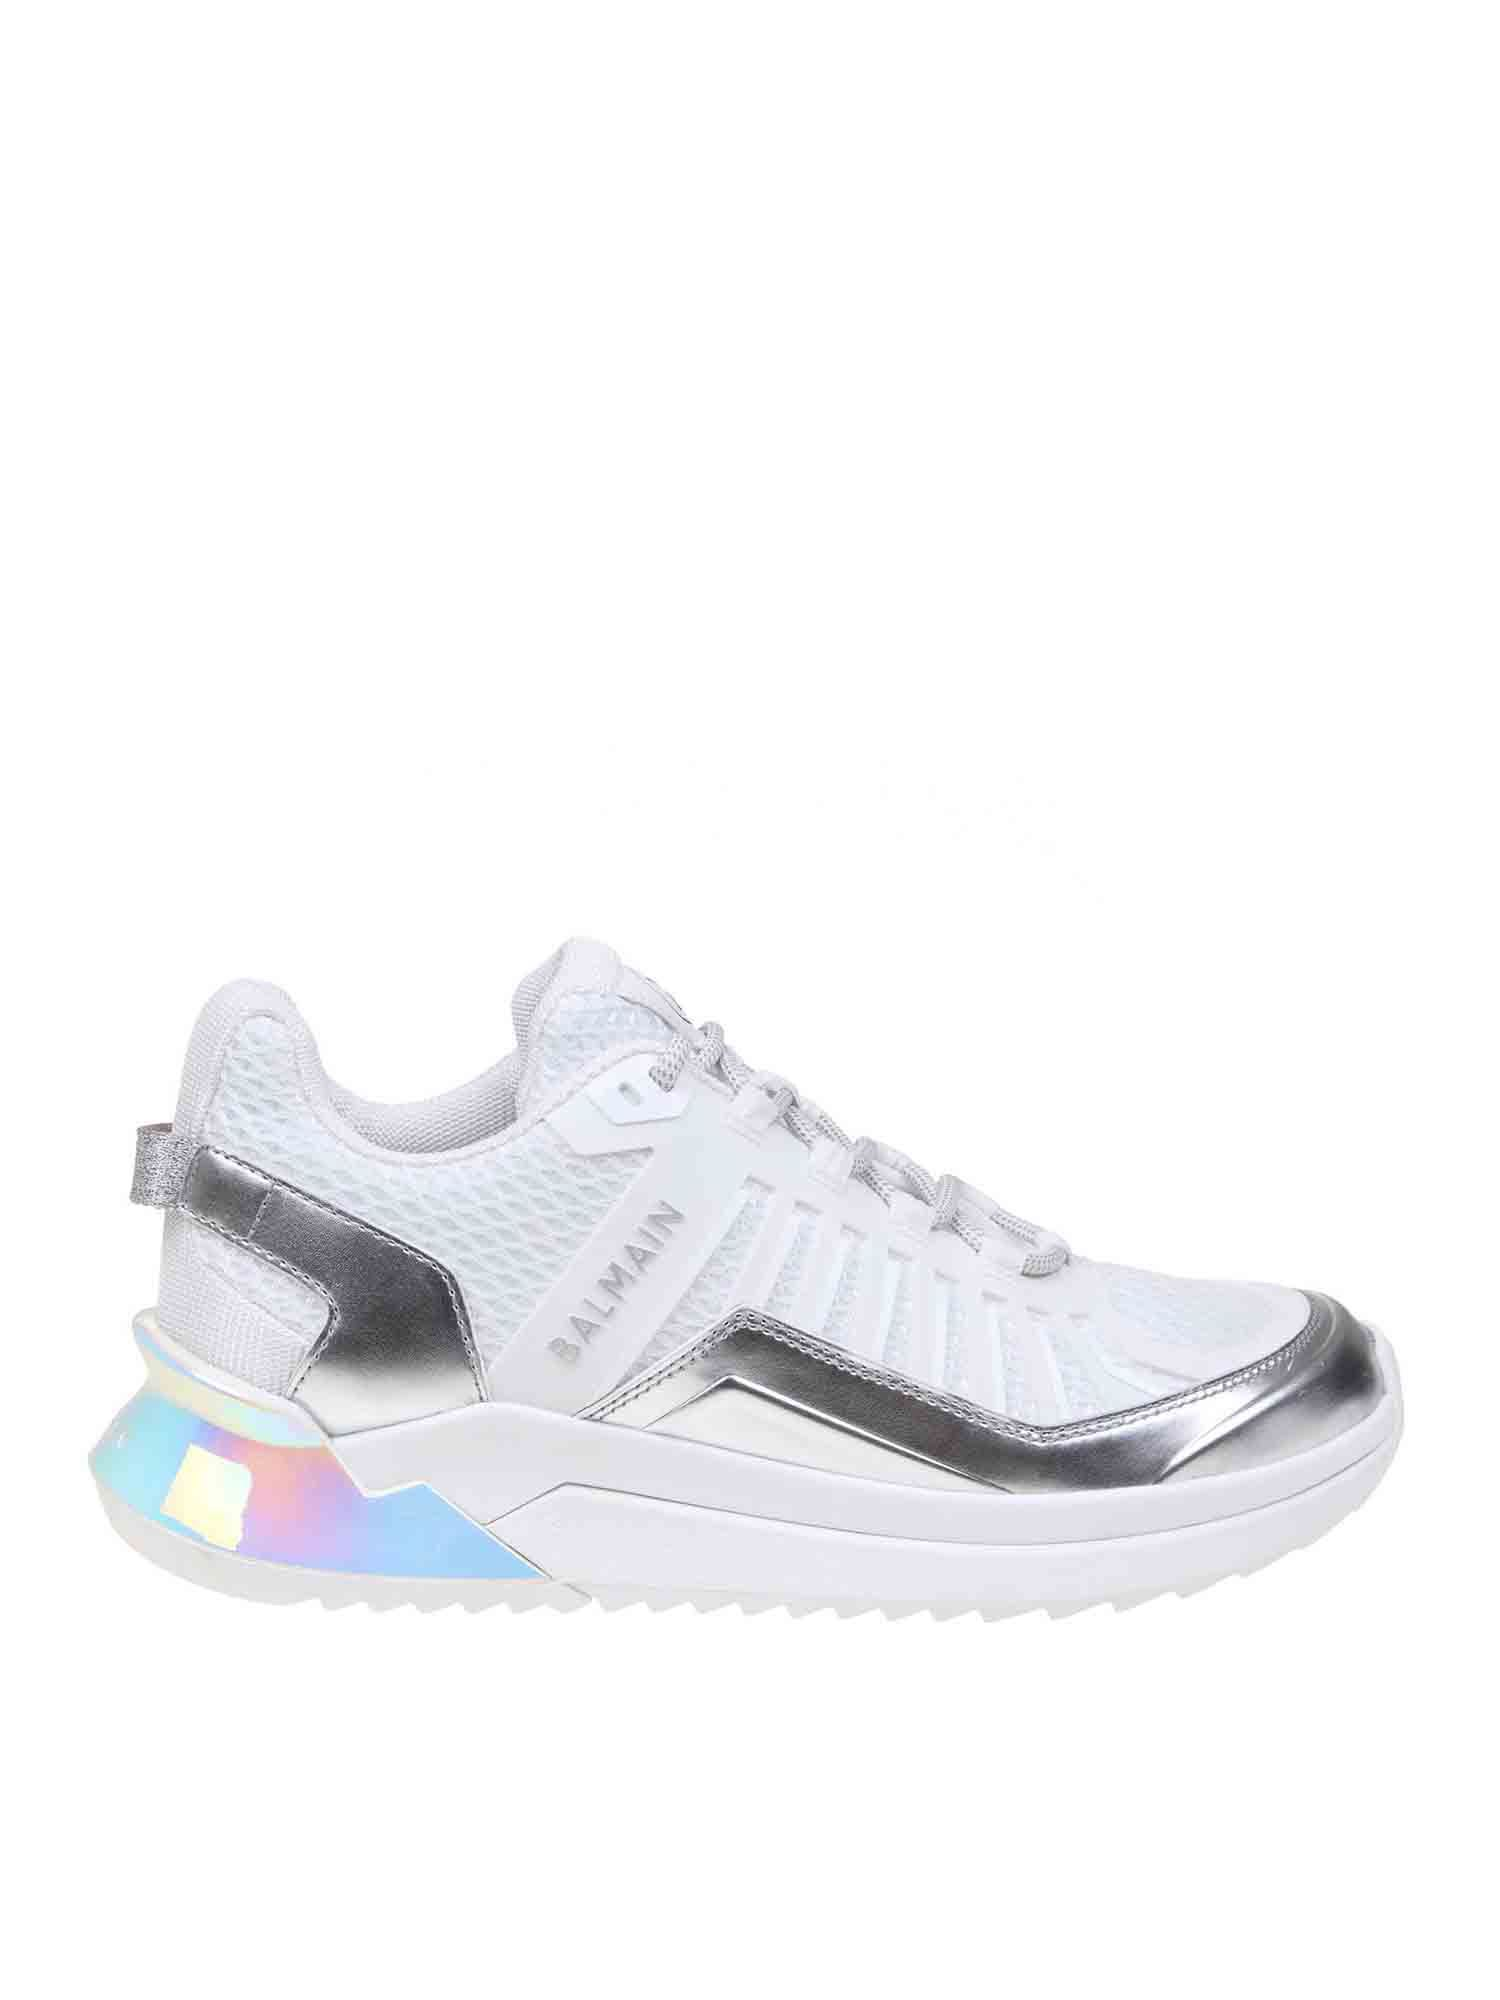 BALMAIN B-TRAIL SNEAKERS IN WHITE AND SILVER